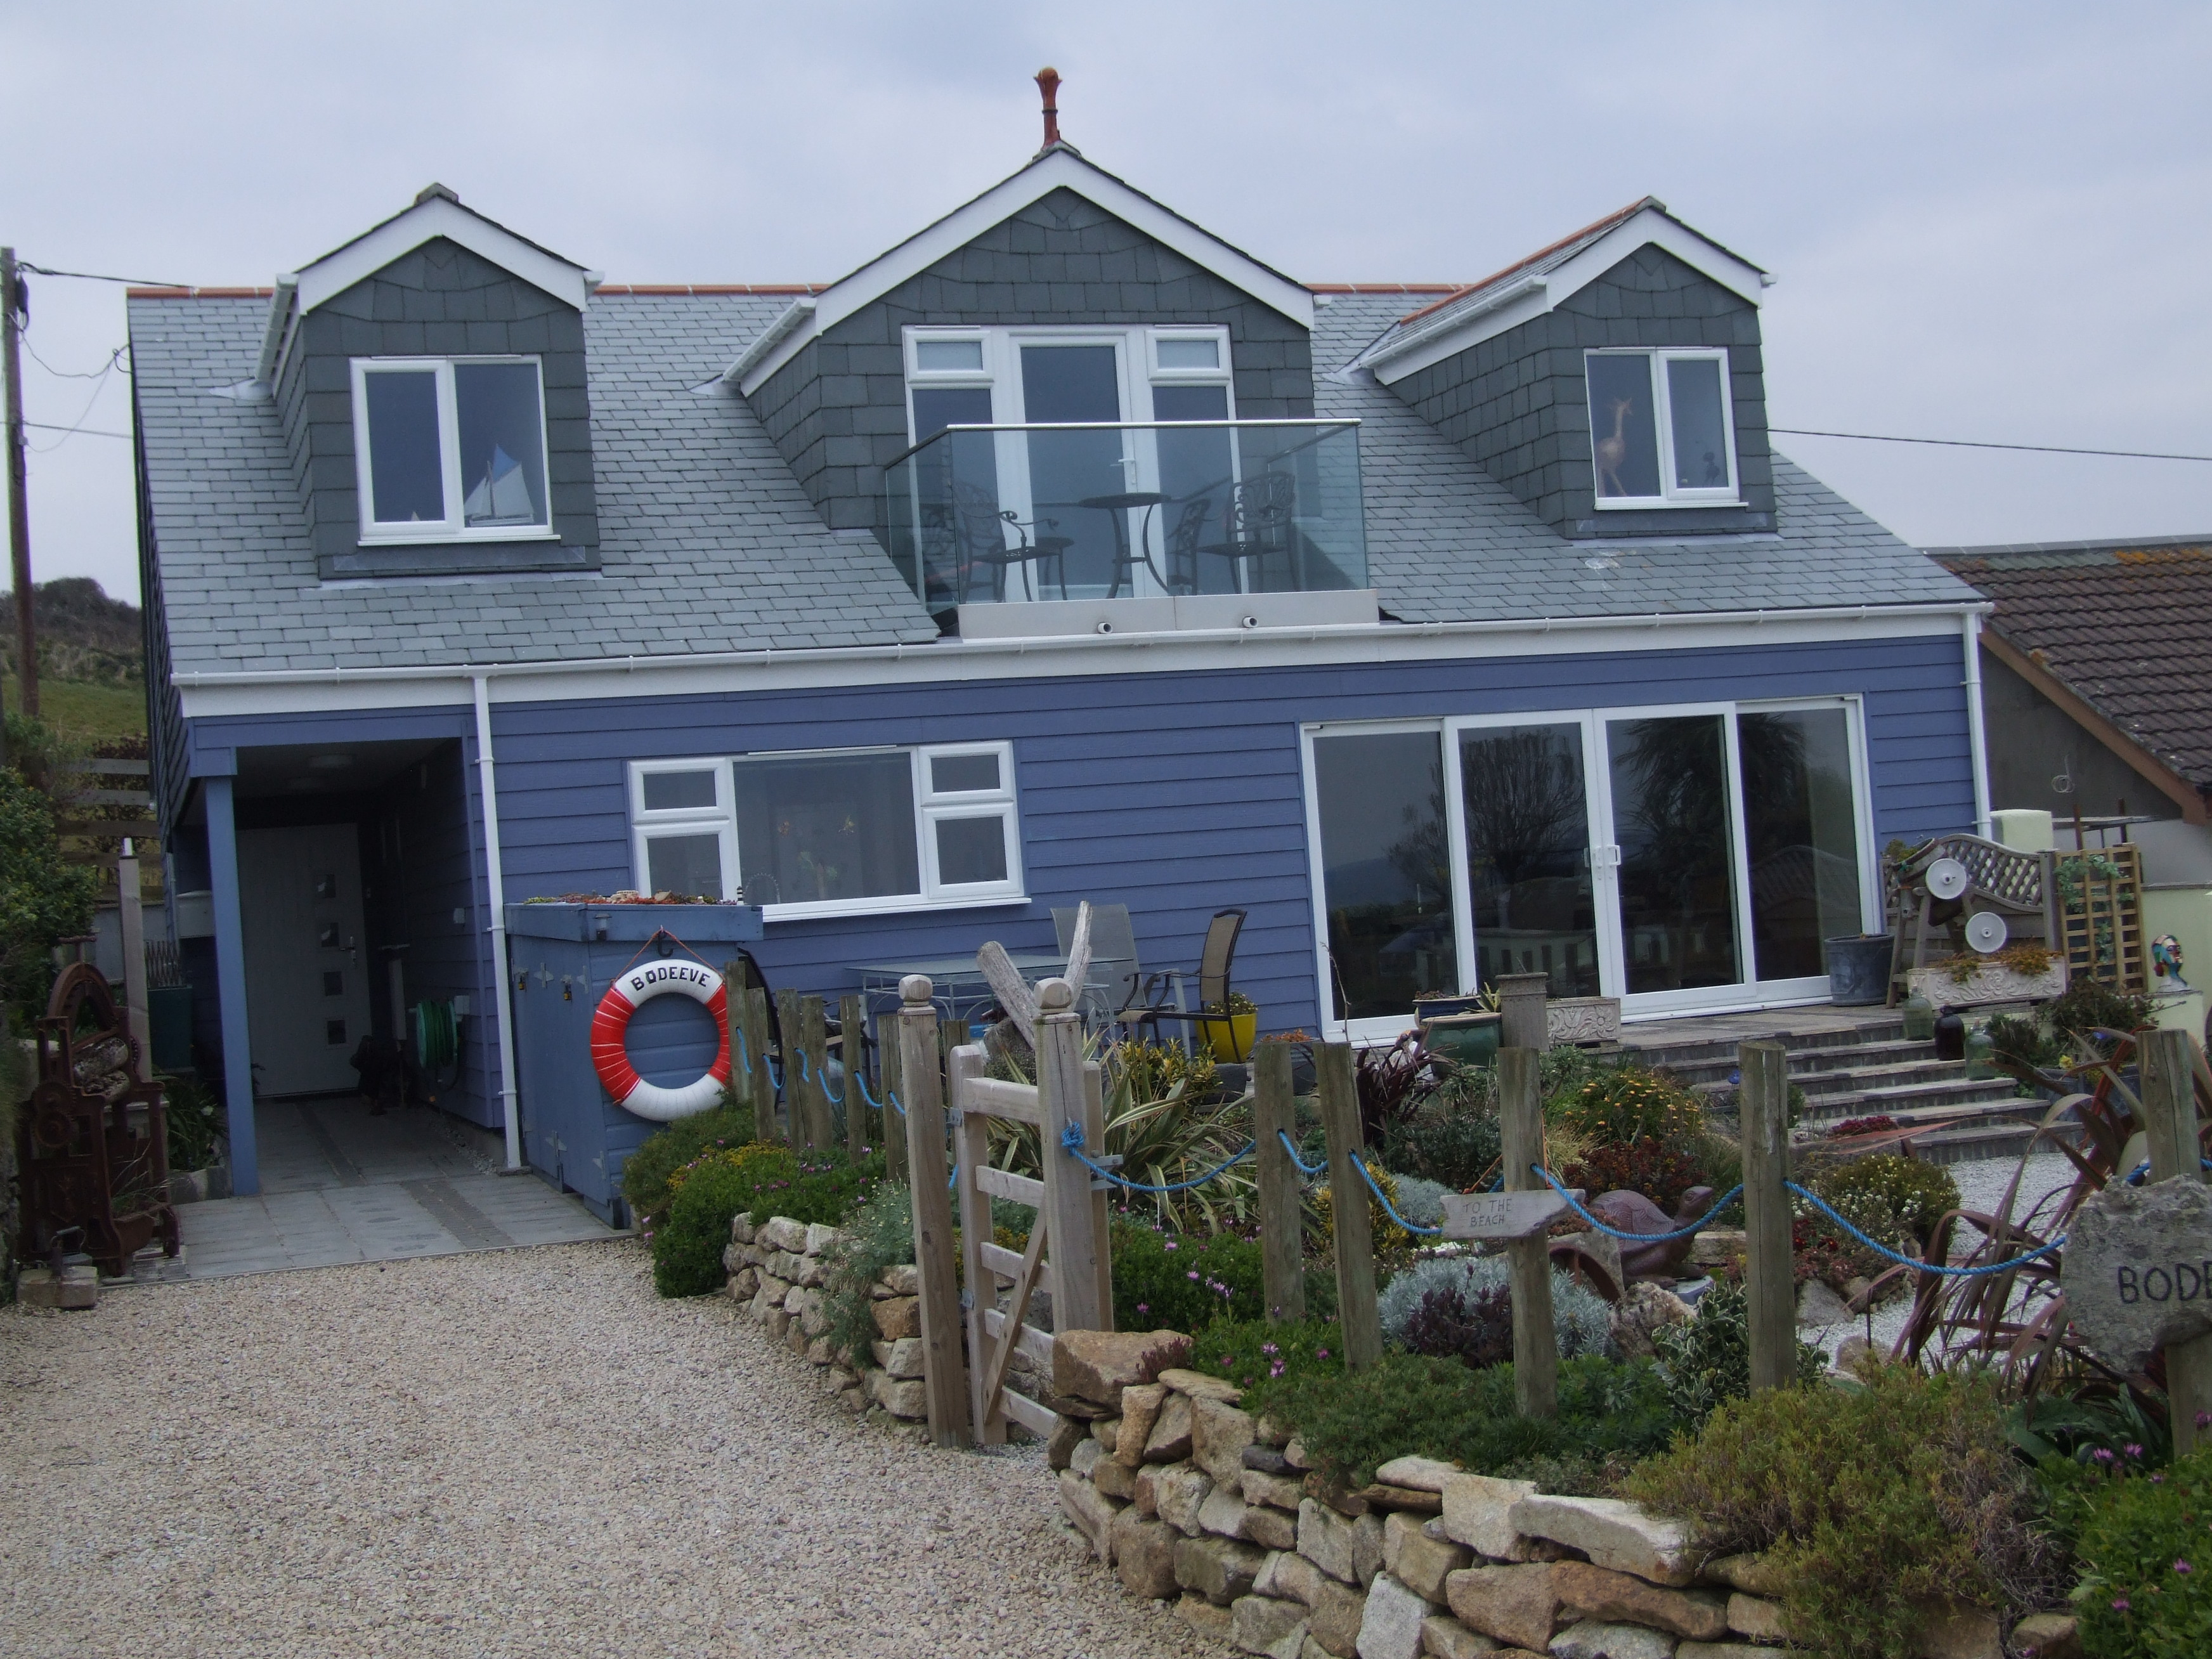 Private House finished in Marley Eternit Cedral Weatherboard